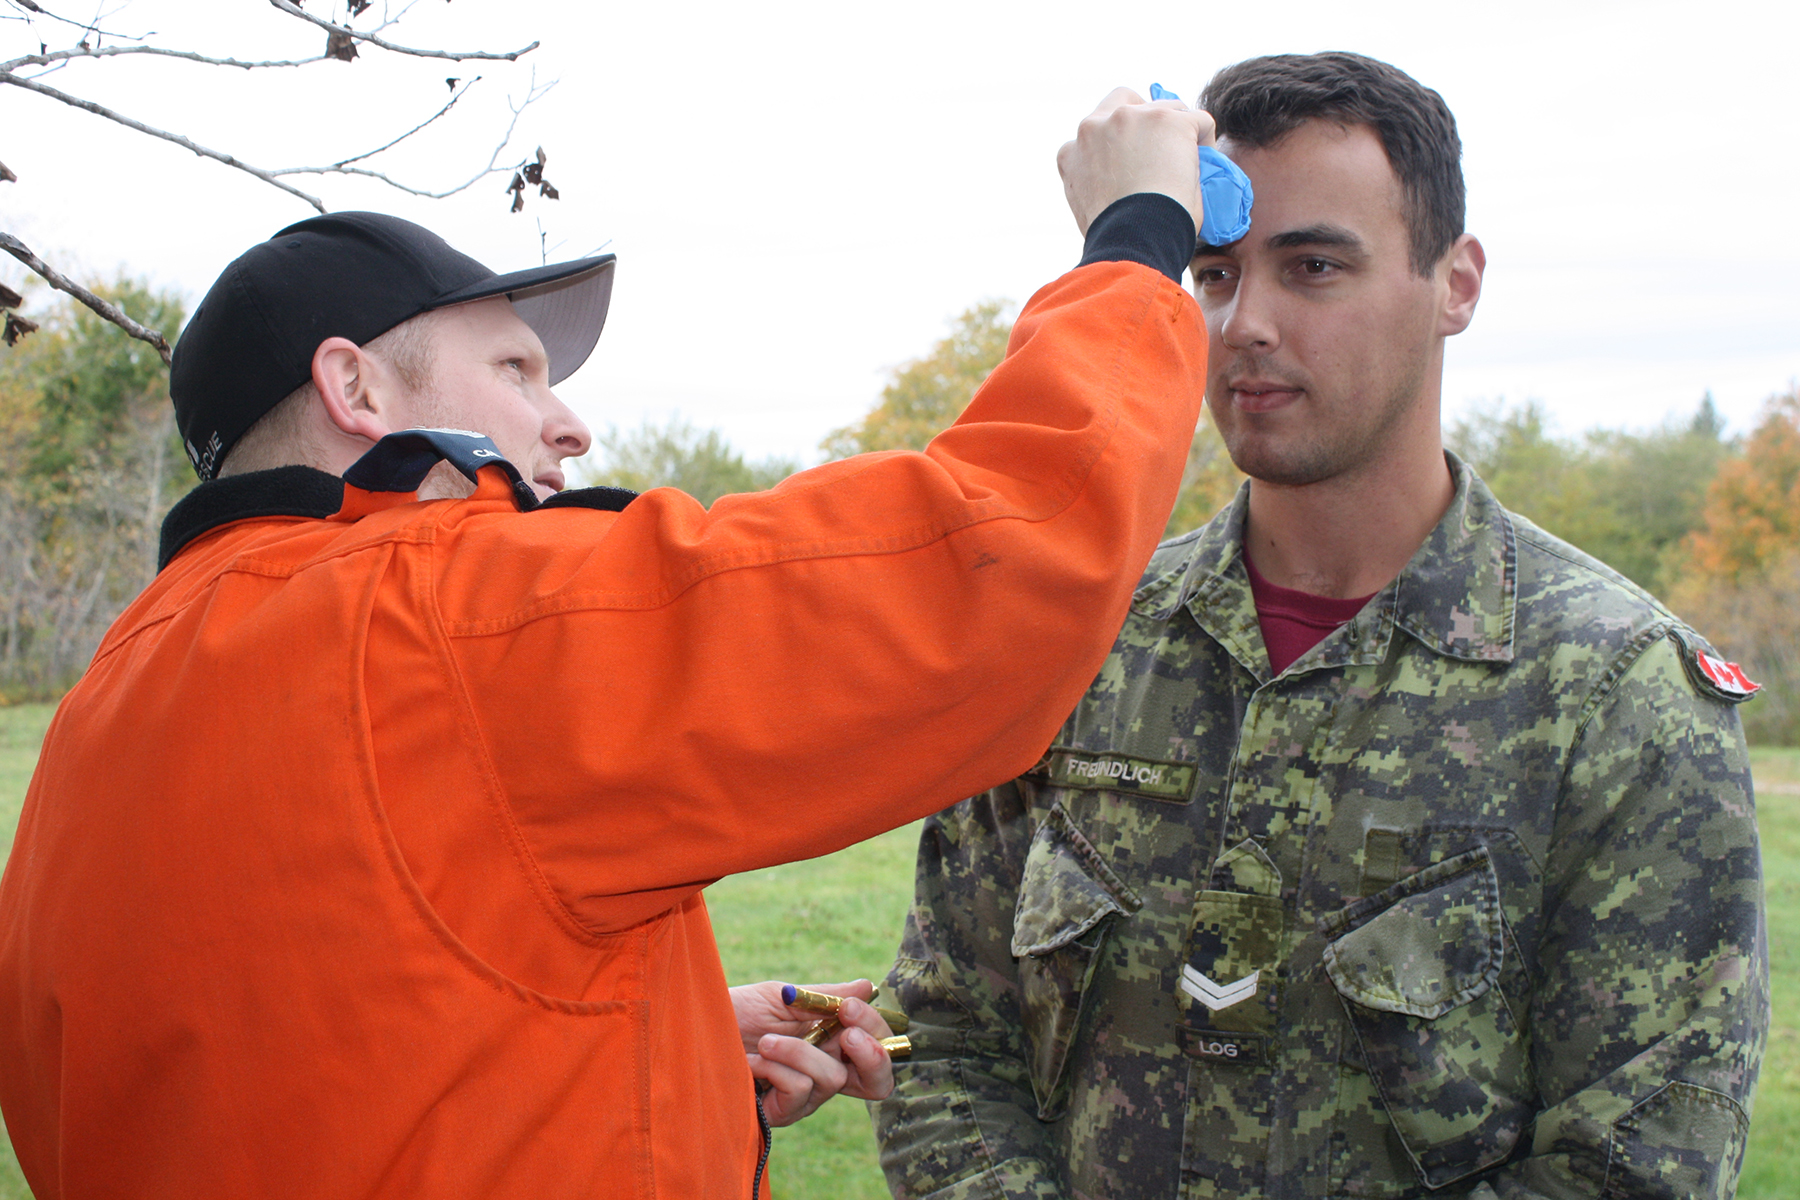 Search and rescue technician Master Corporal Alexandre Lanoix puts the final touches on volunteer victim Corporal Philip Freundlich's simulated head injury for a two-aircraft crash scenario as 413 Transport and Rescue Squadron's search and rescue exercise  gets underway. PHOTO: Sara White